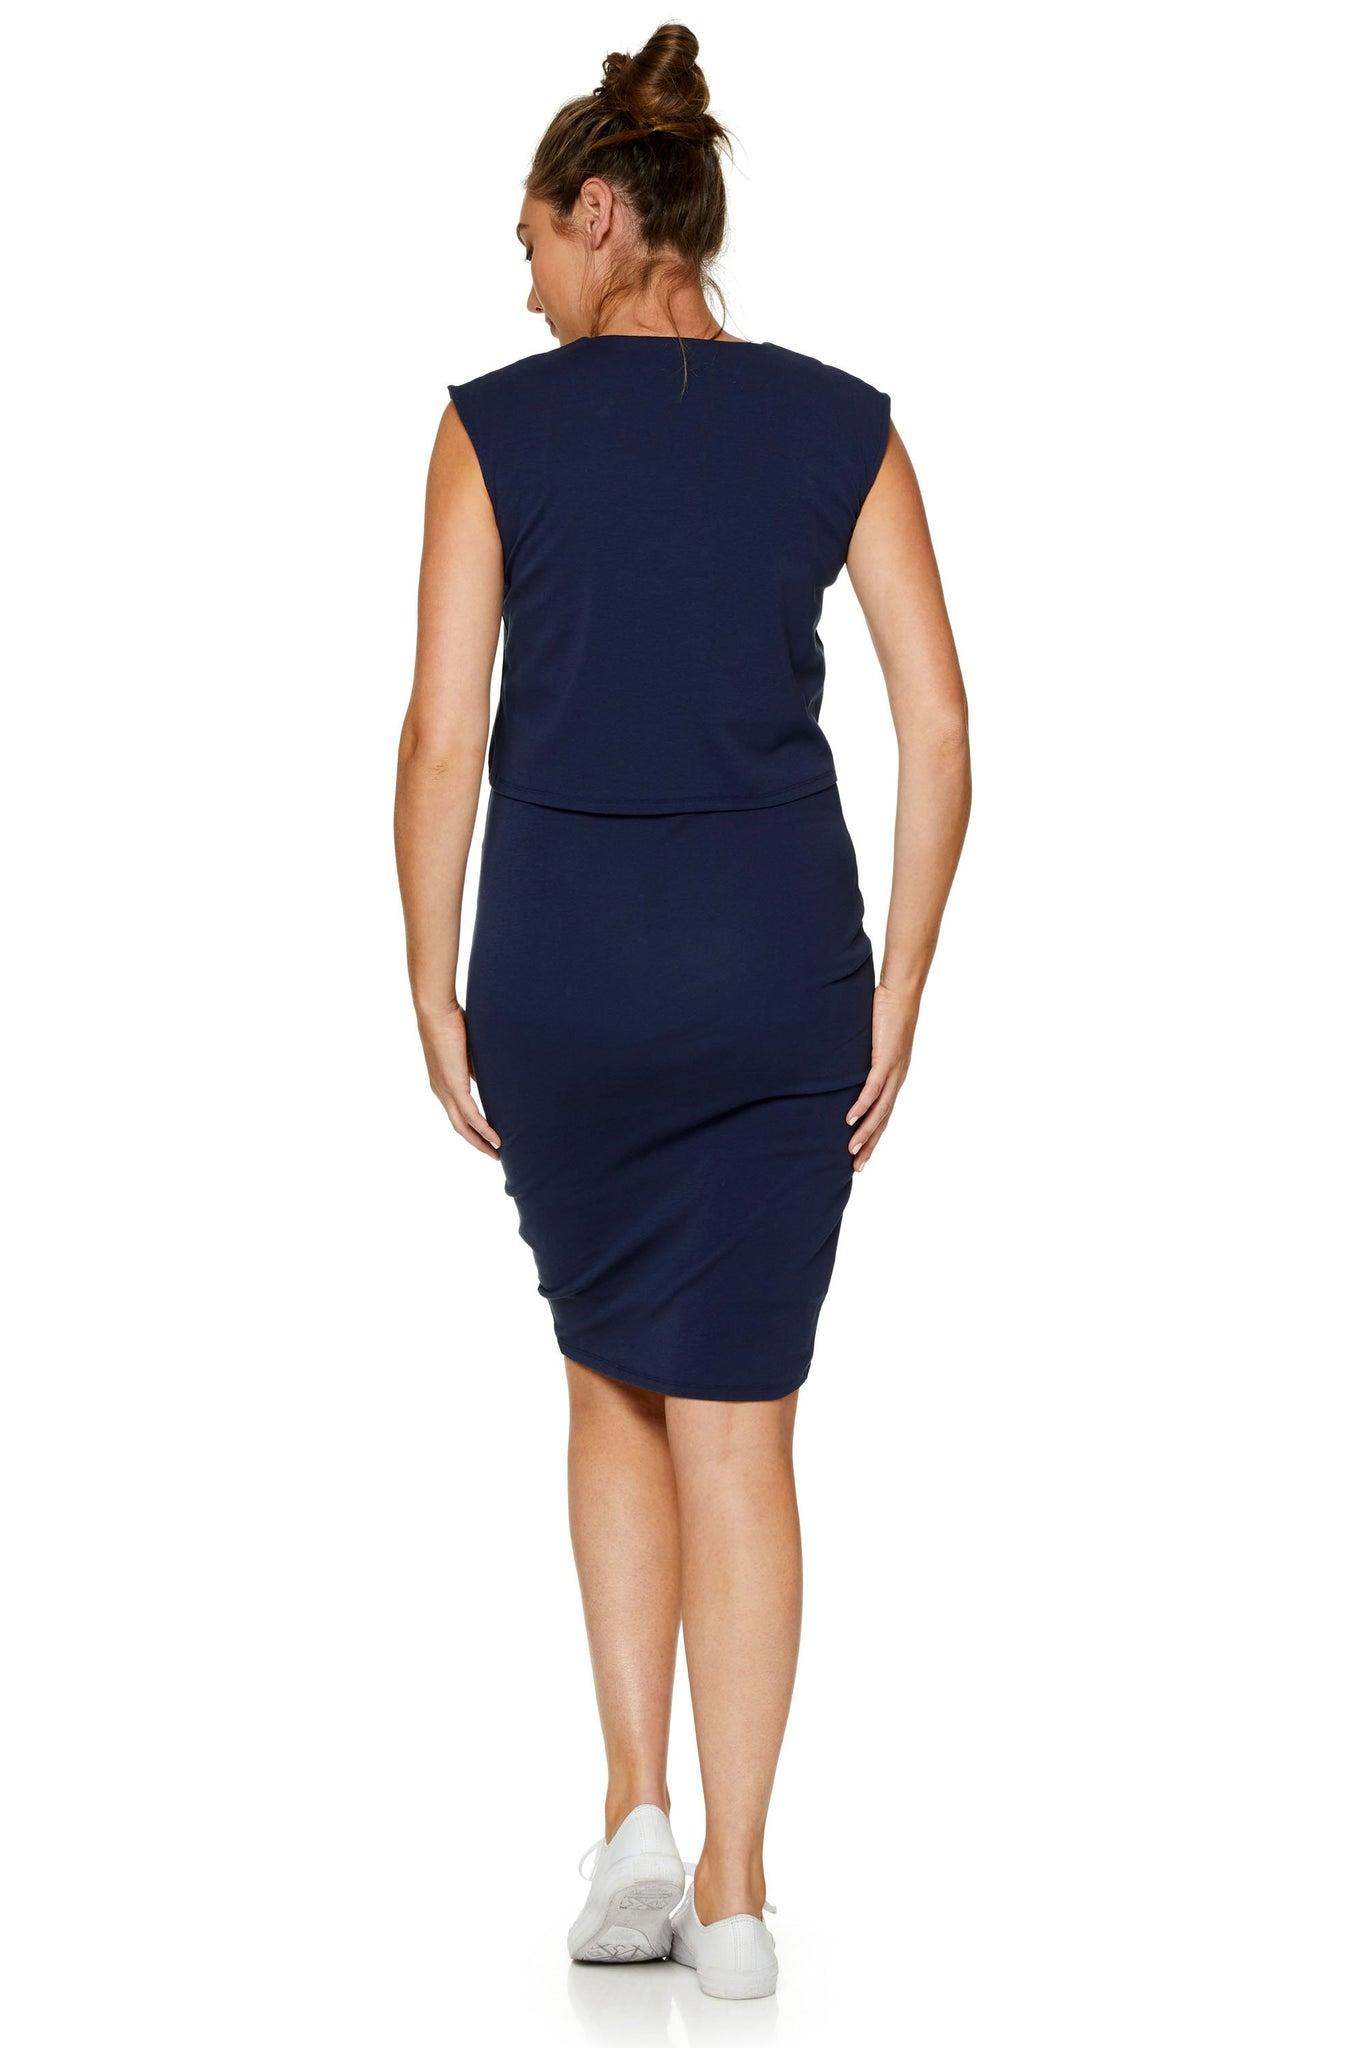 maternity nursing dress - navy 9